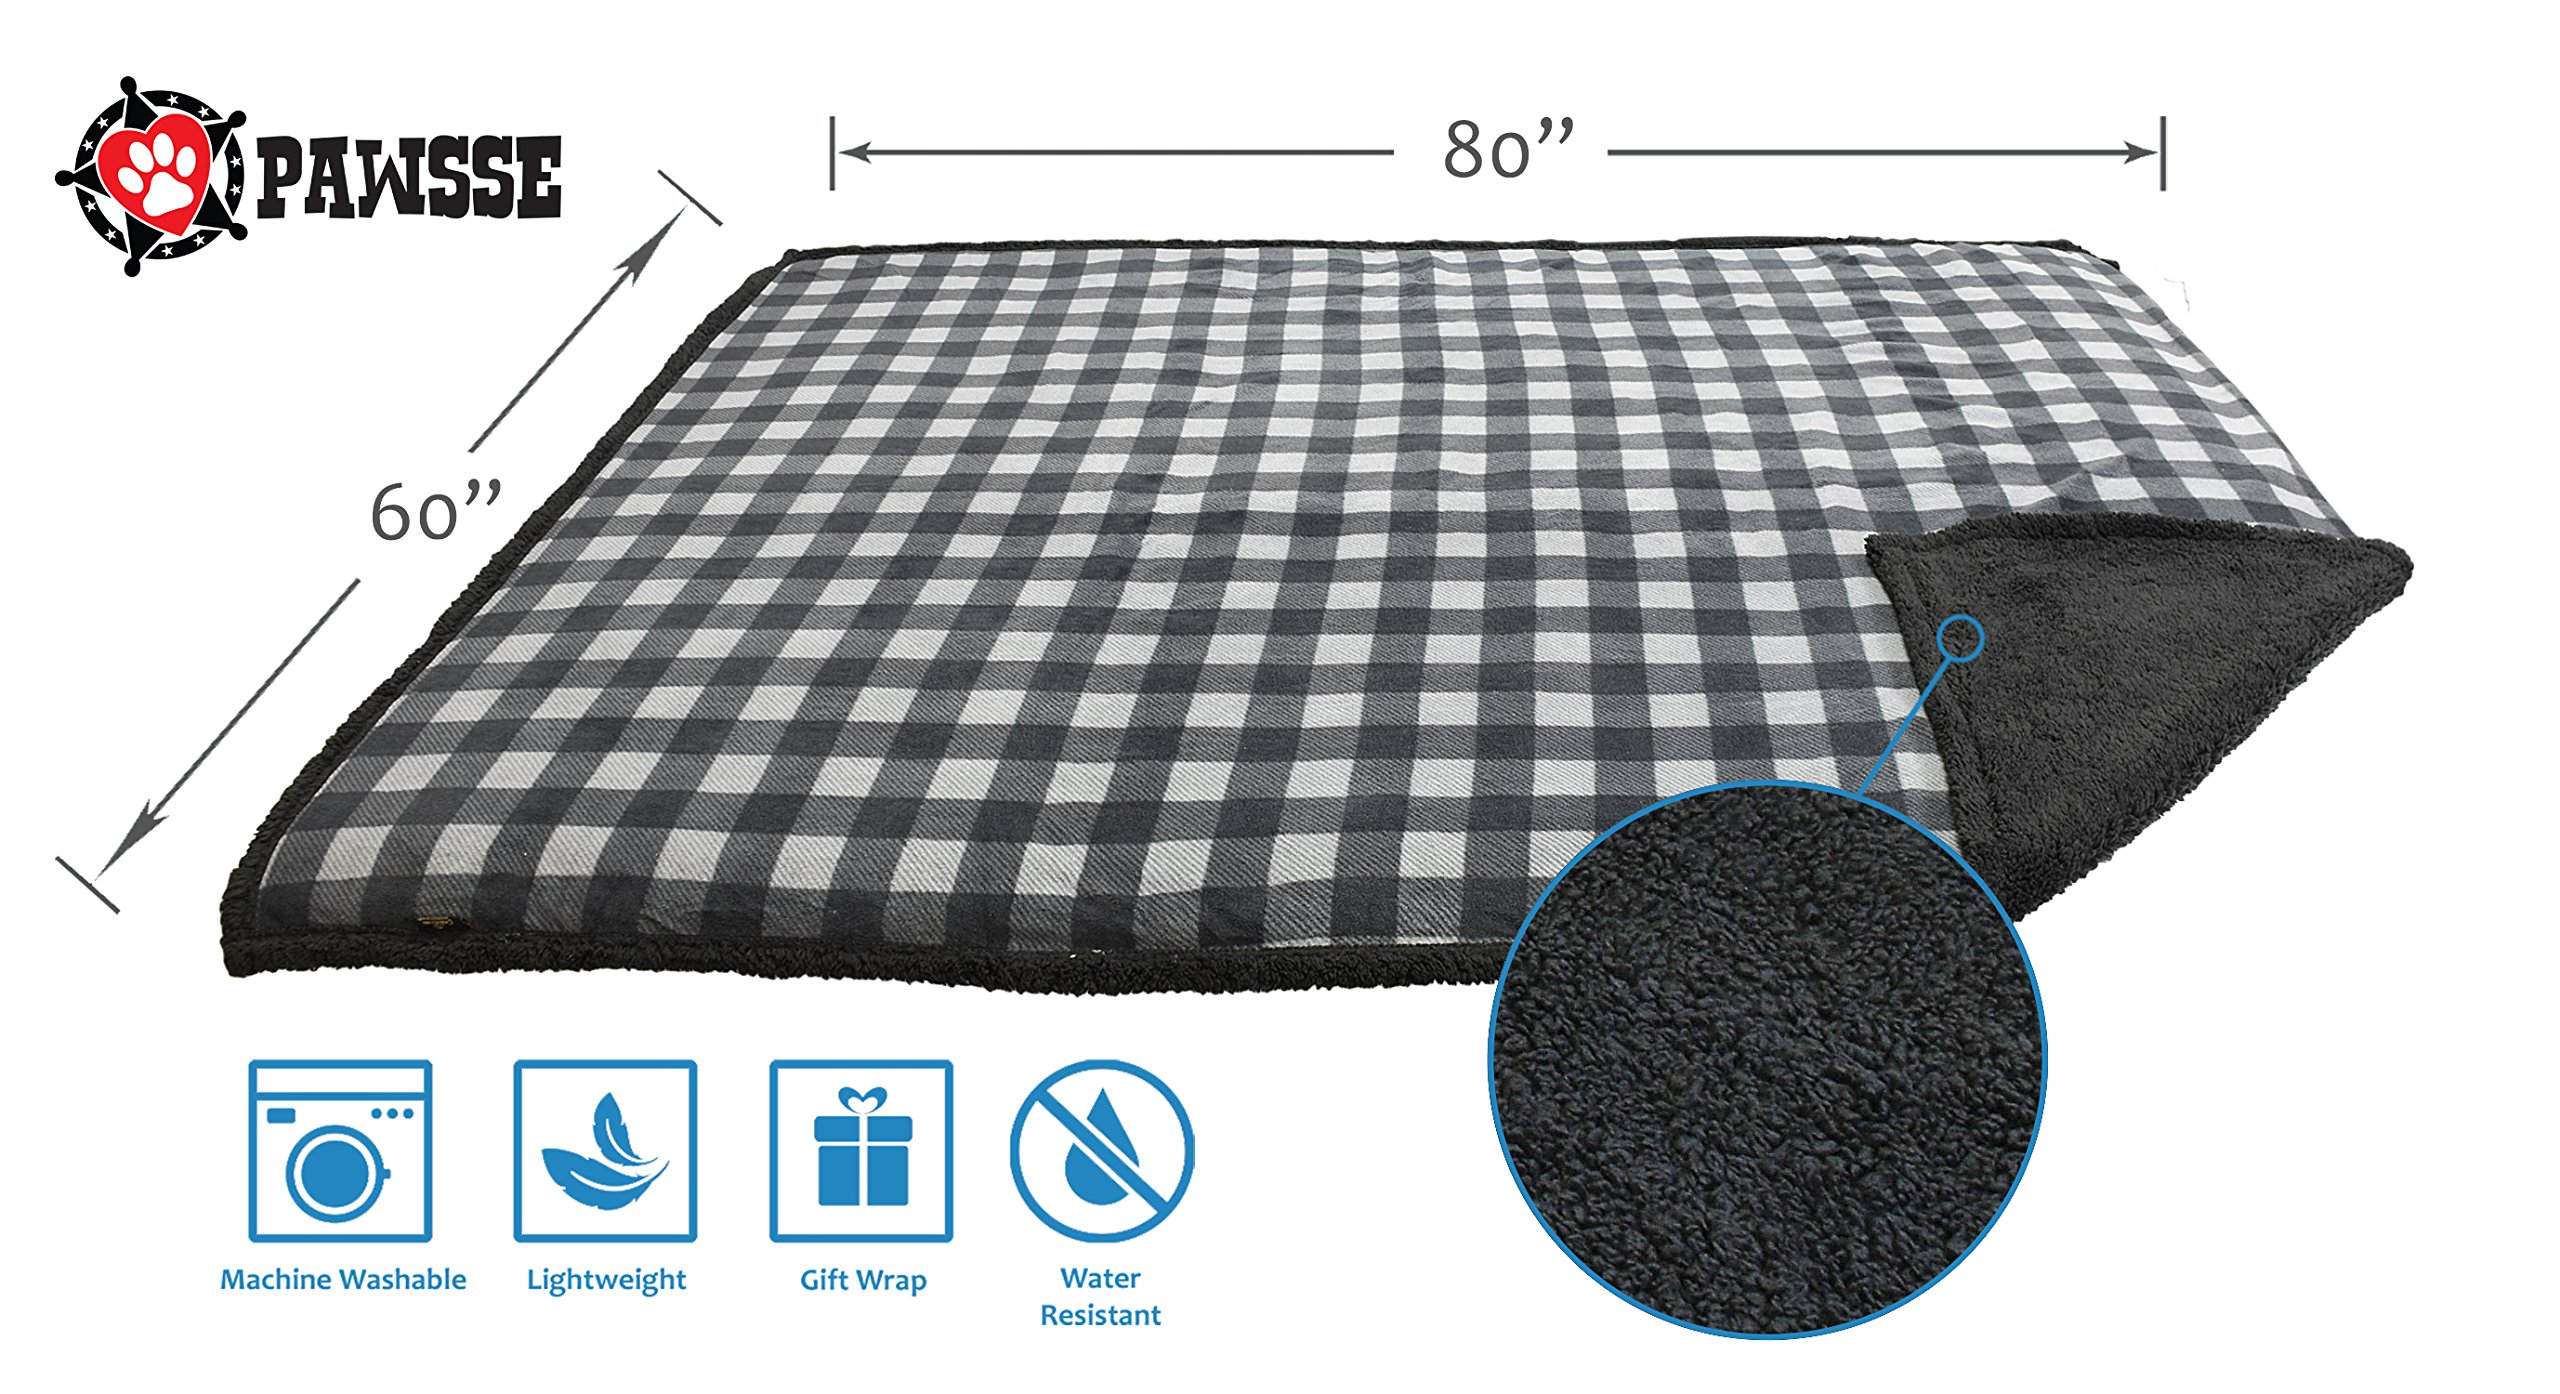 Pawsse Waterproof Dog Blanket,Furniture Sofa Couch Covers for Large Dogs Cats Puppy,Pet Cushion Mat for Bed Car Seat 80''x60'' by Pawsse (Image #3)